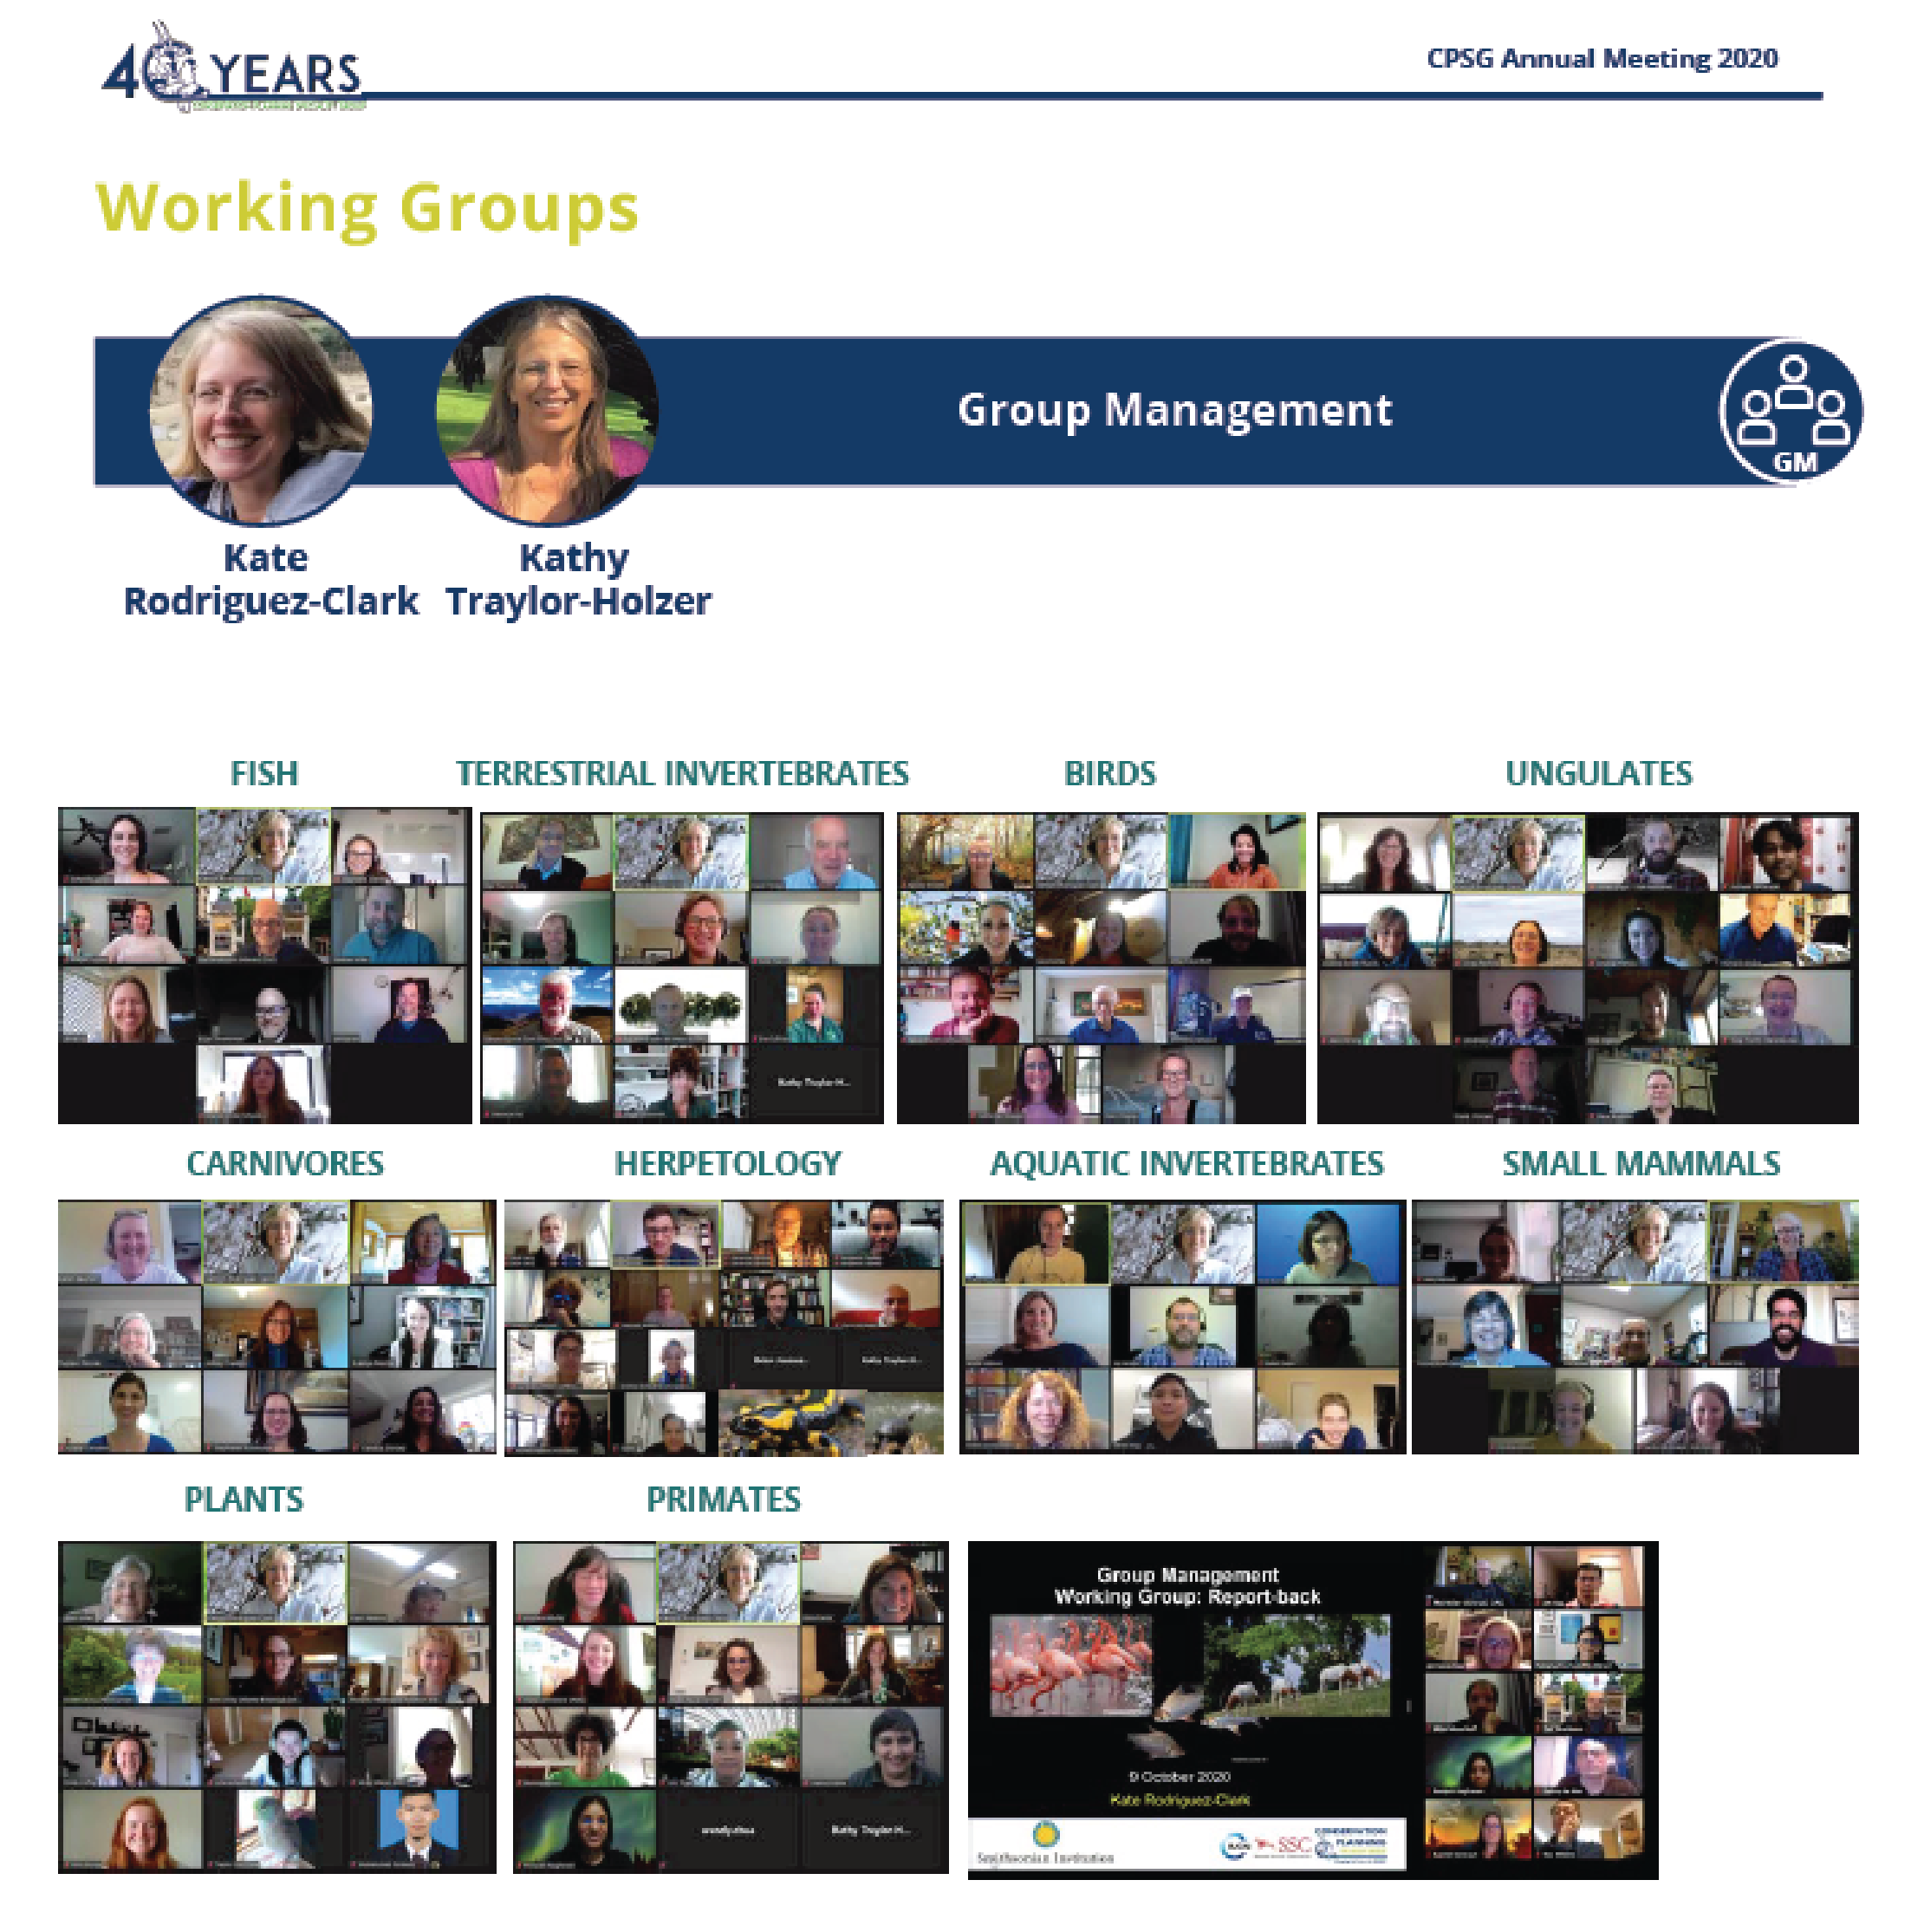 RSI participation in the Group-Management Initiative